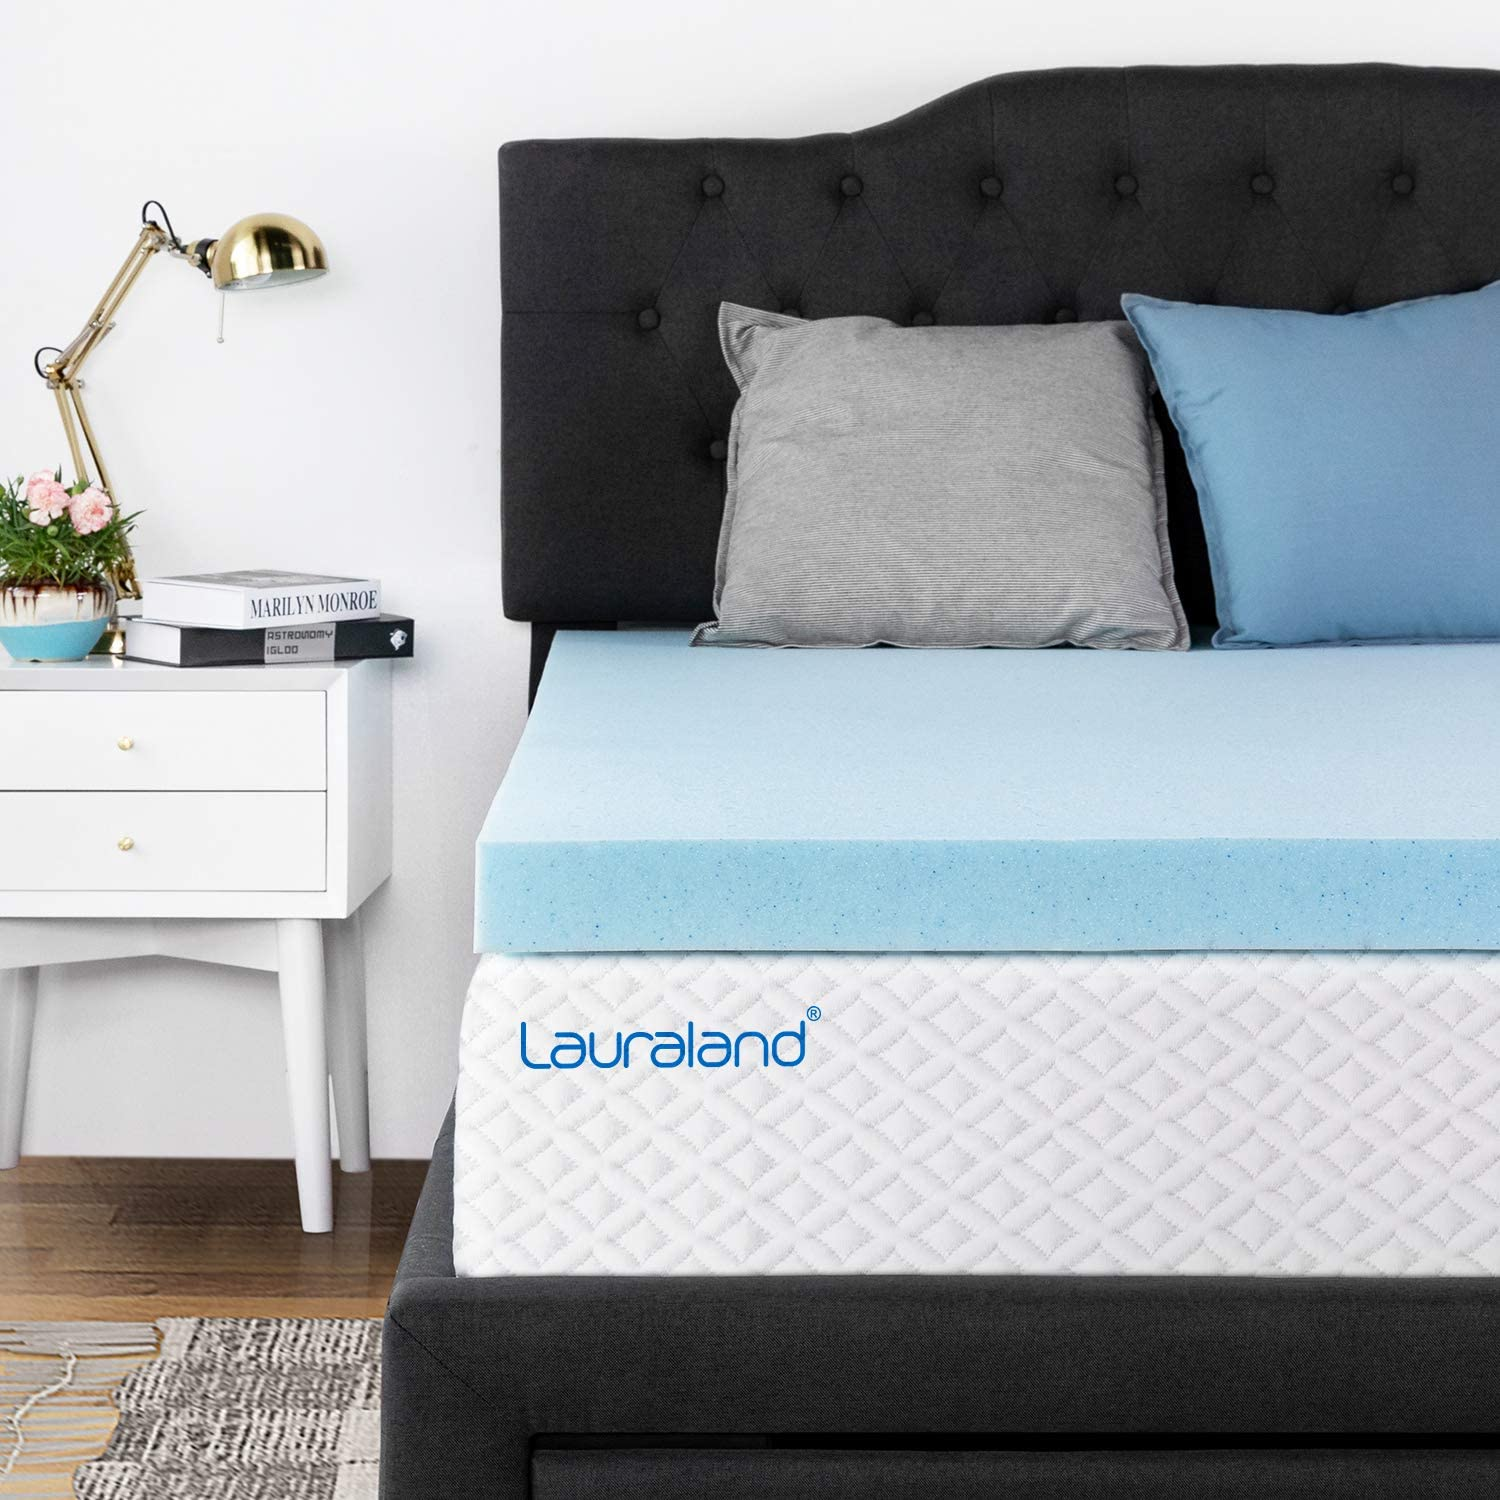 Lauraland Memory Foam Mattress Topper Full, 2-Inch Active Cooling Design Bed Topper, CertiPUR-US 10-Year Warranty